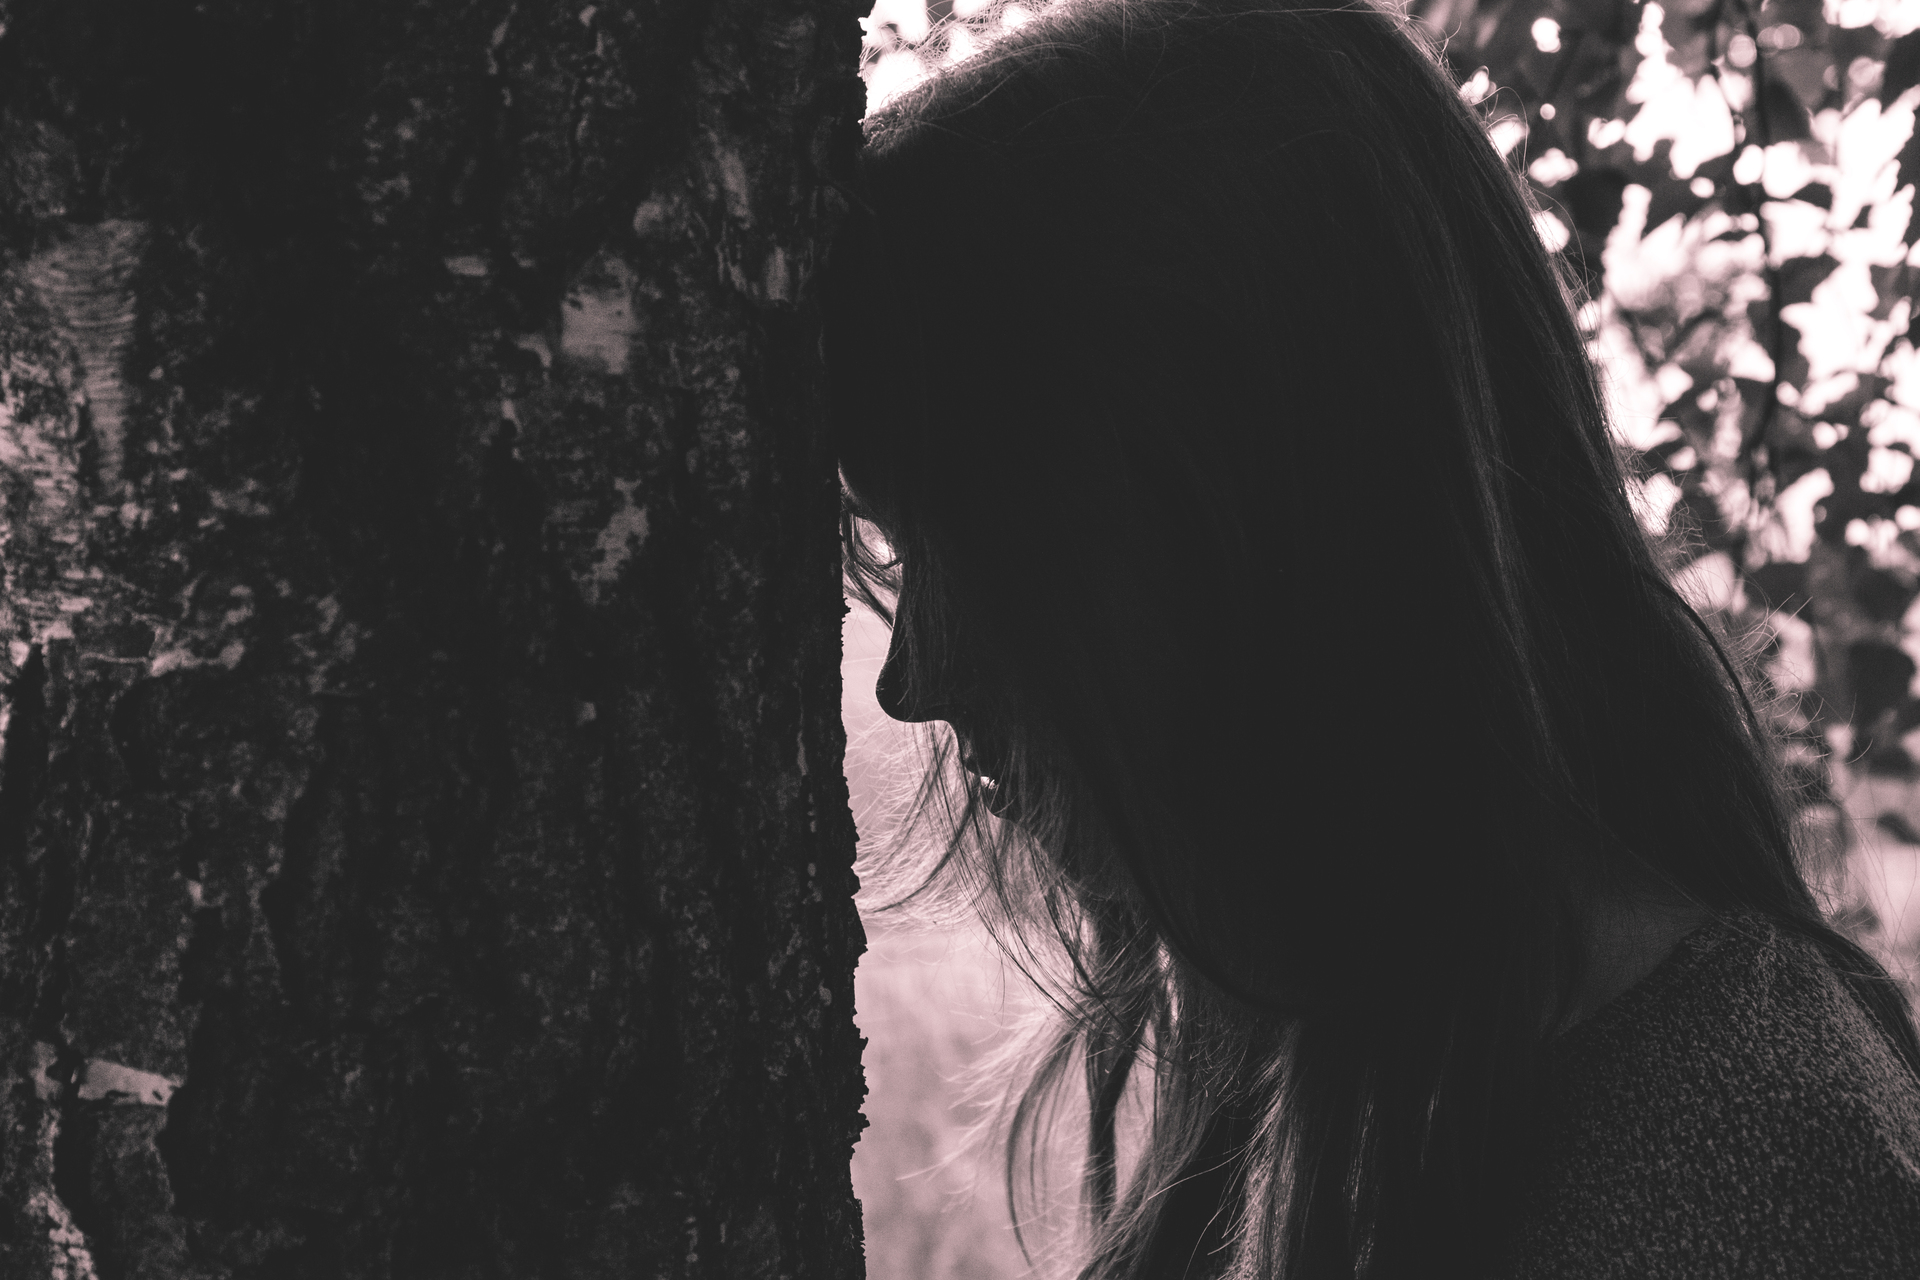 girl_leaning_against_the_tree